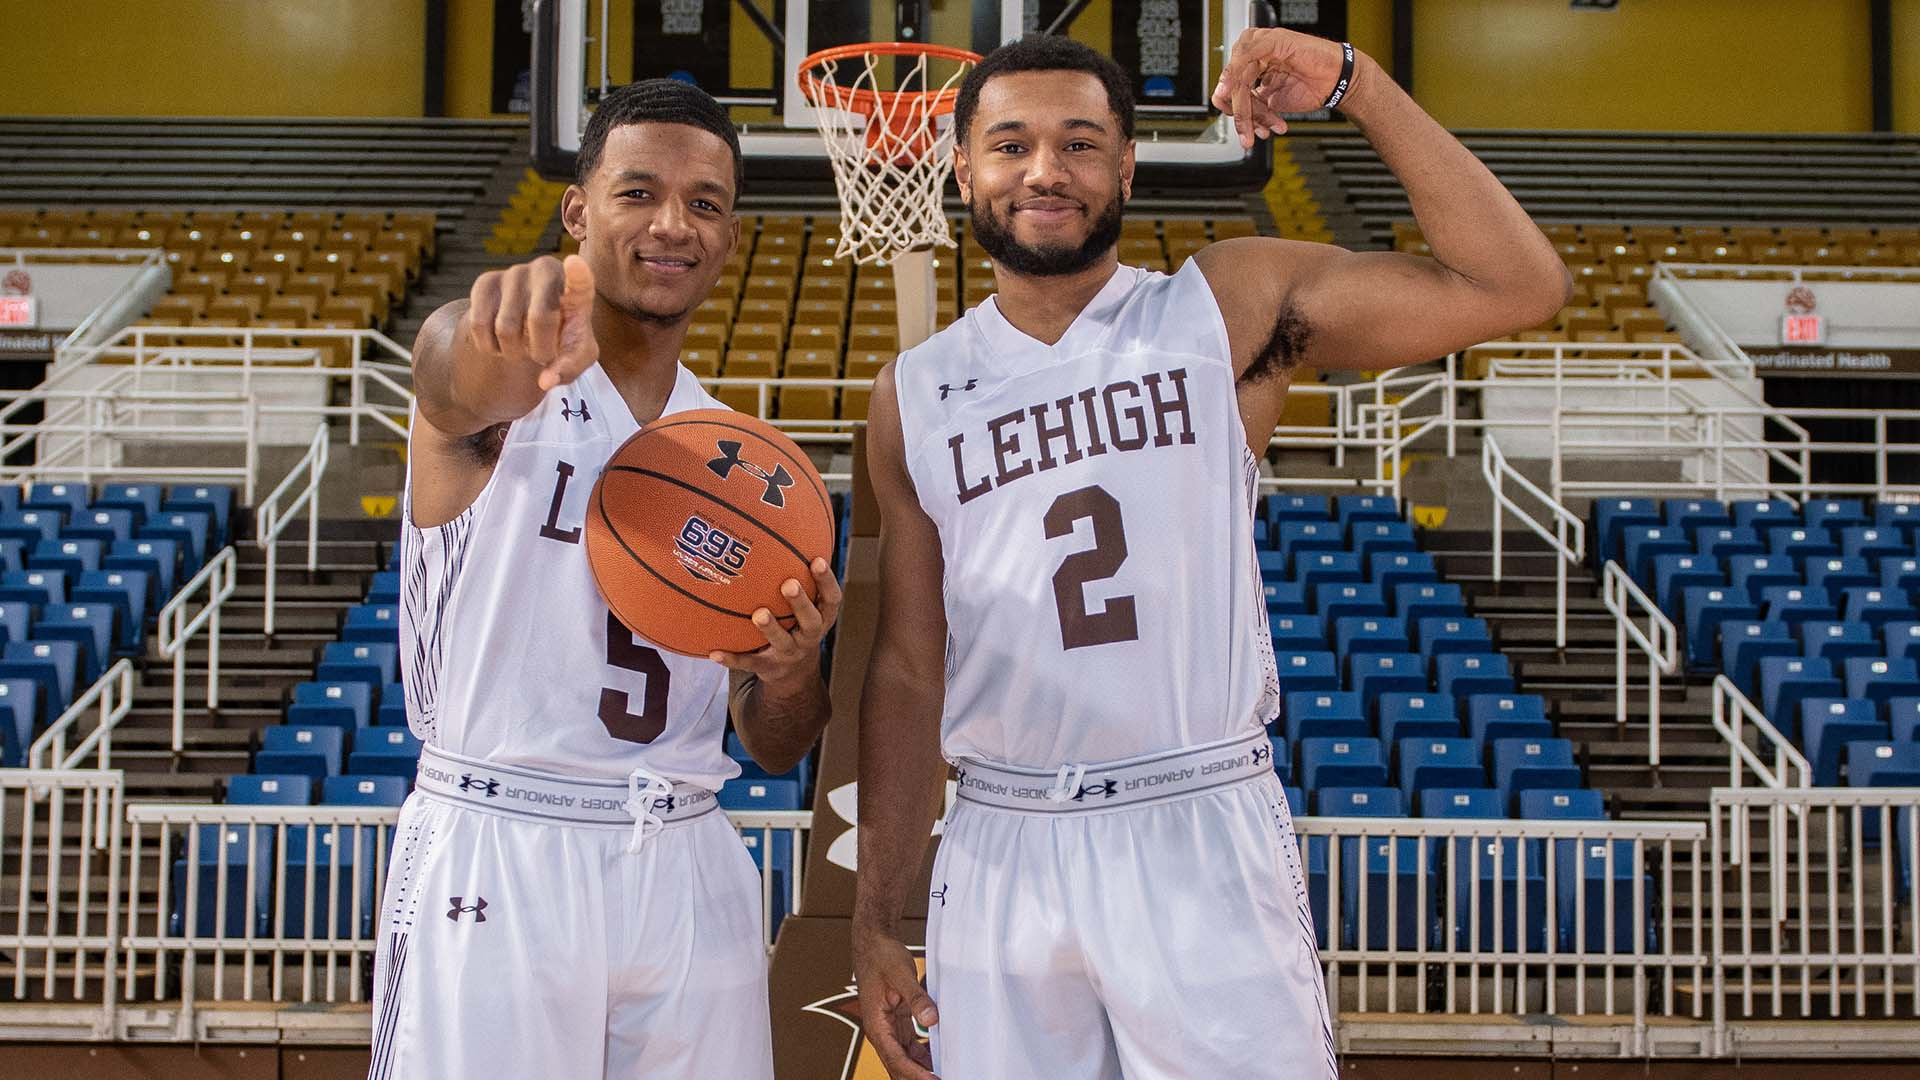 Lehigh remains home for big day this Sunday vs. Holy Cross - Lehigh ... 2ebde515f